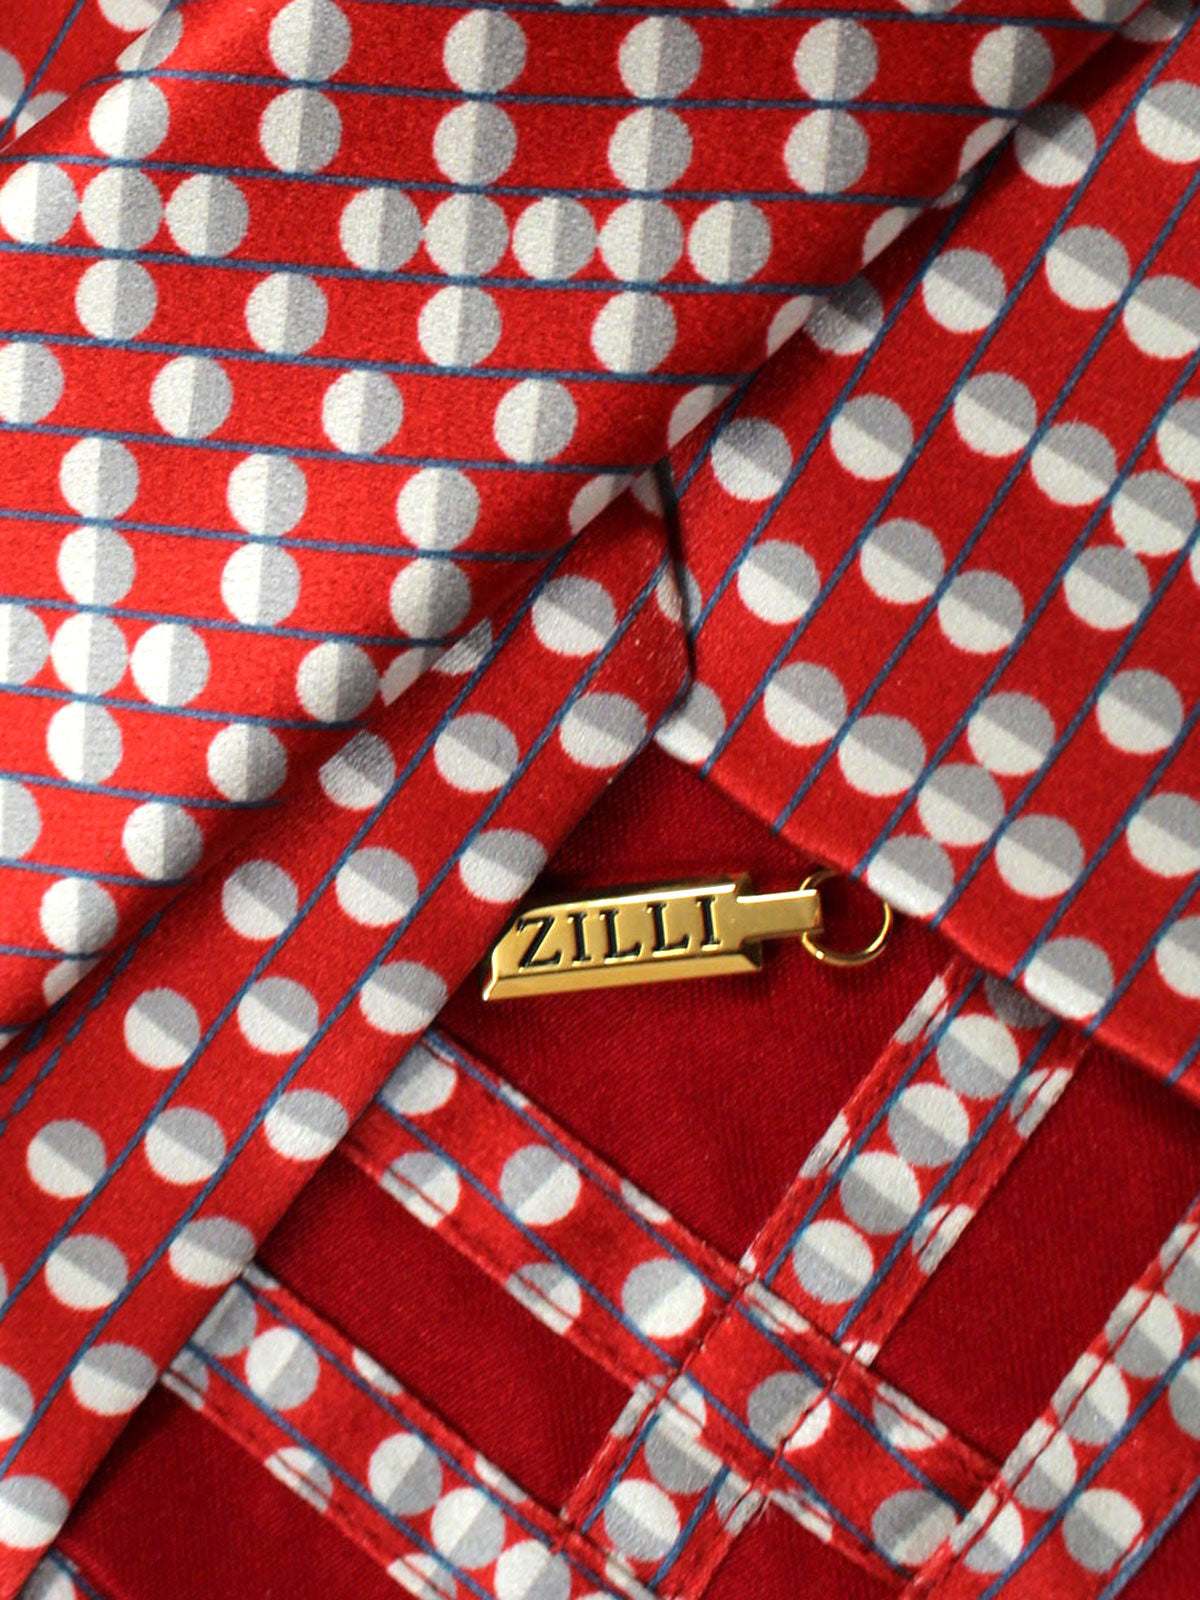 Zilli Silk Tie Red Royal Blue Dots Design - Wide Necktie